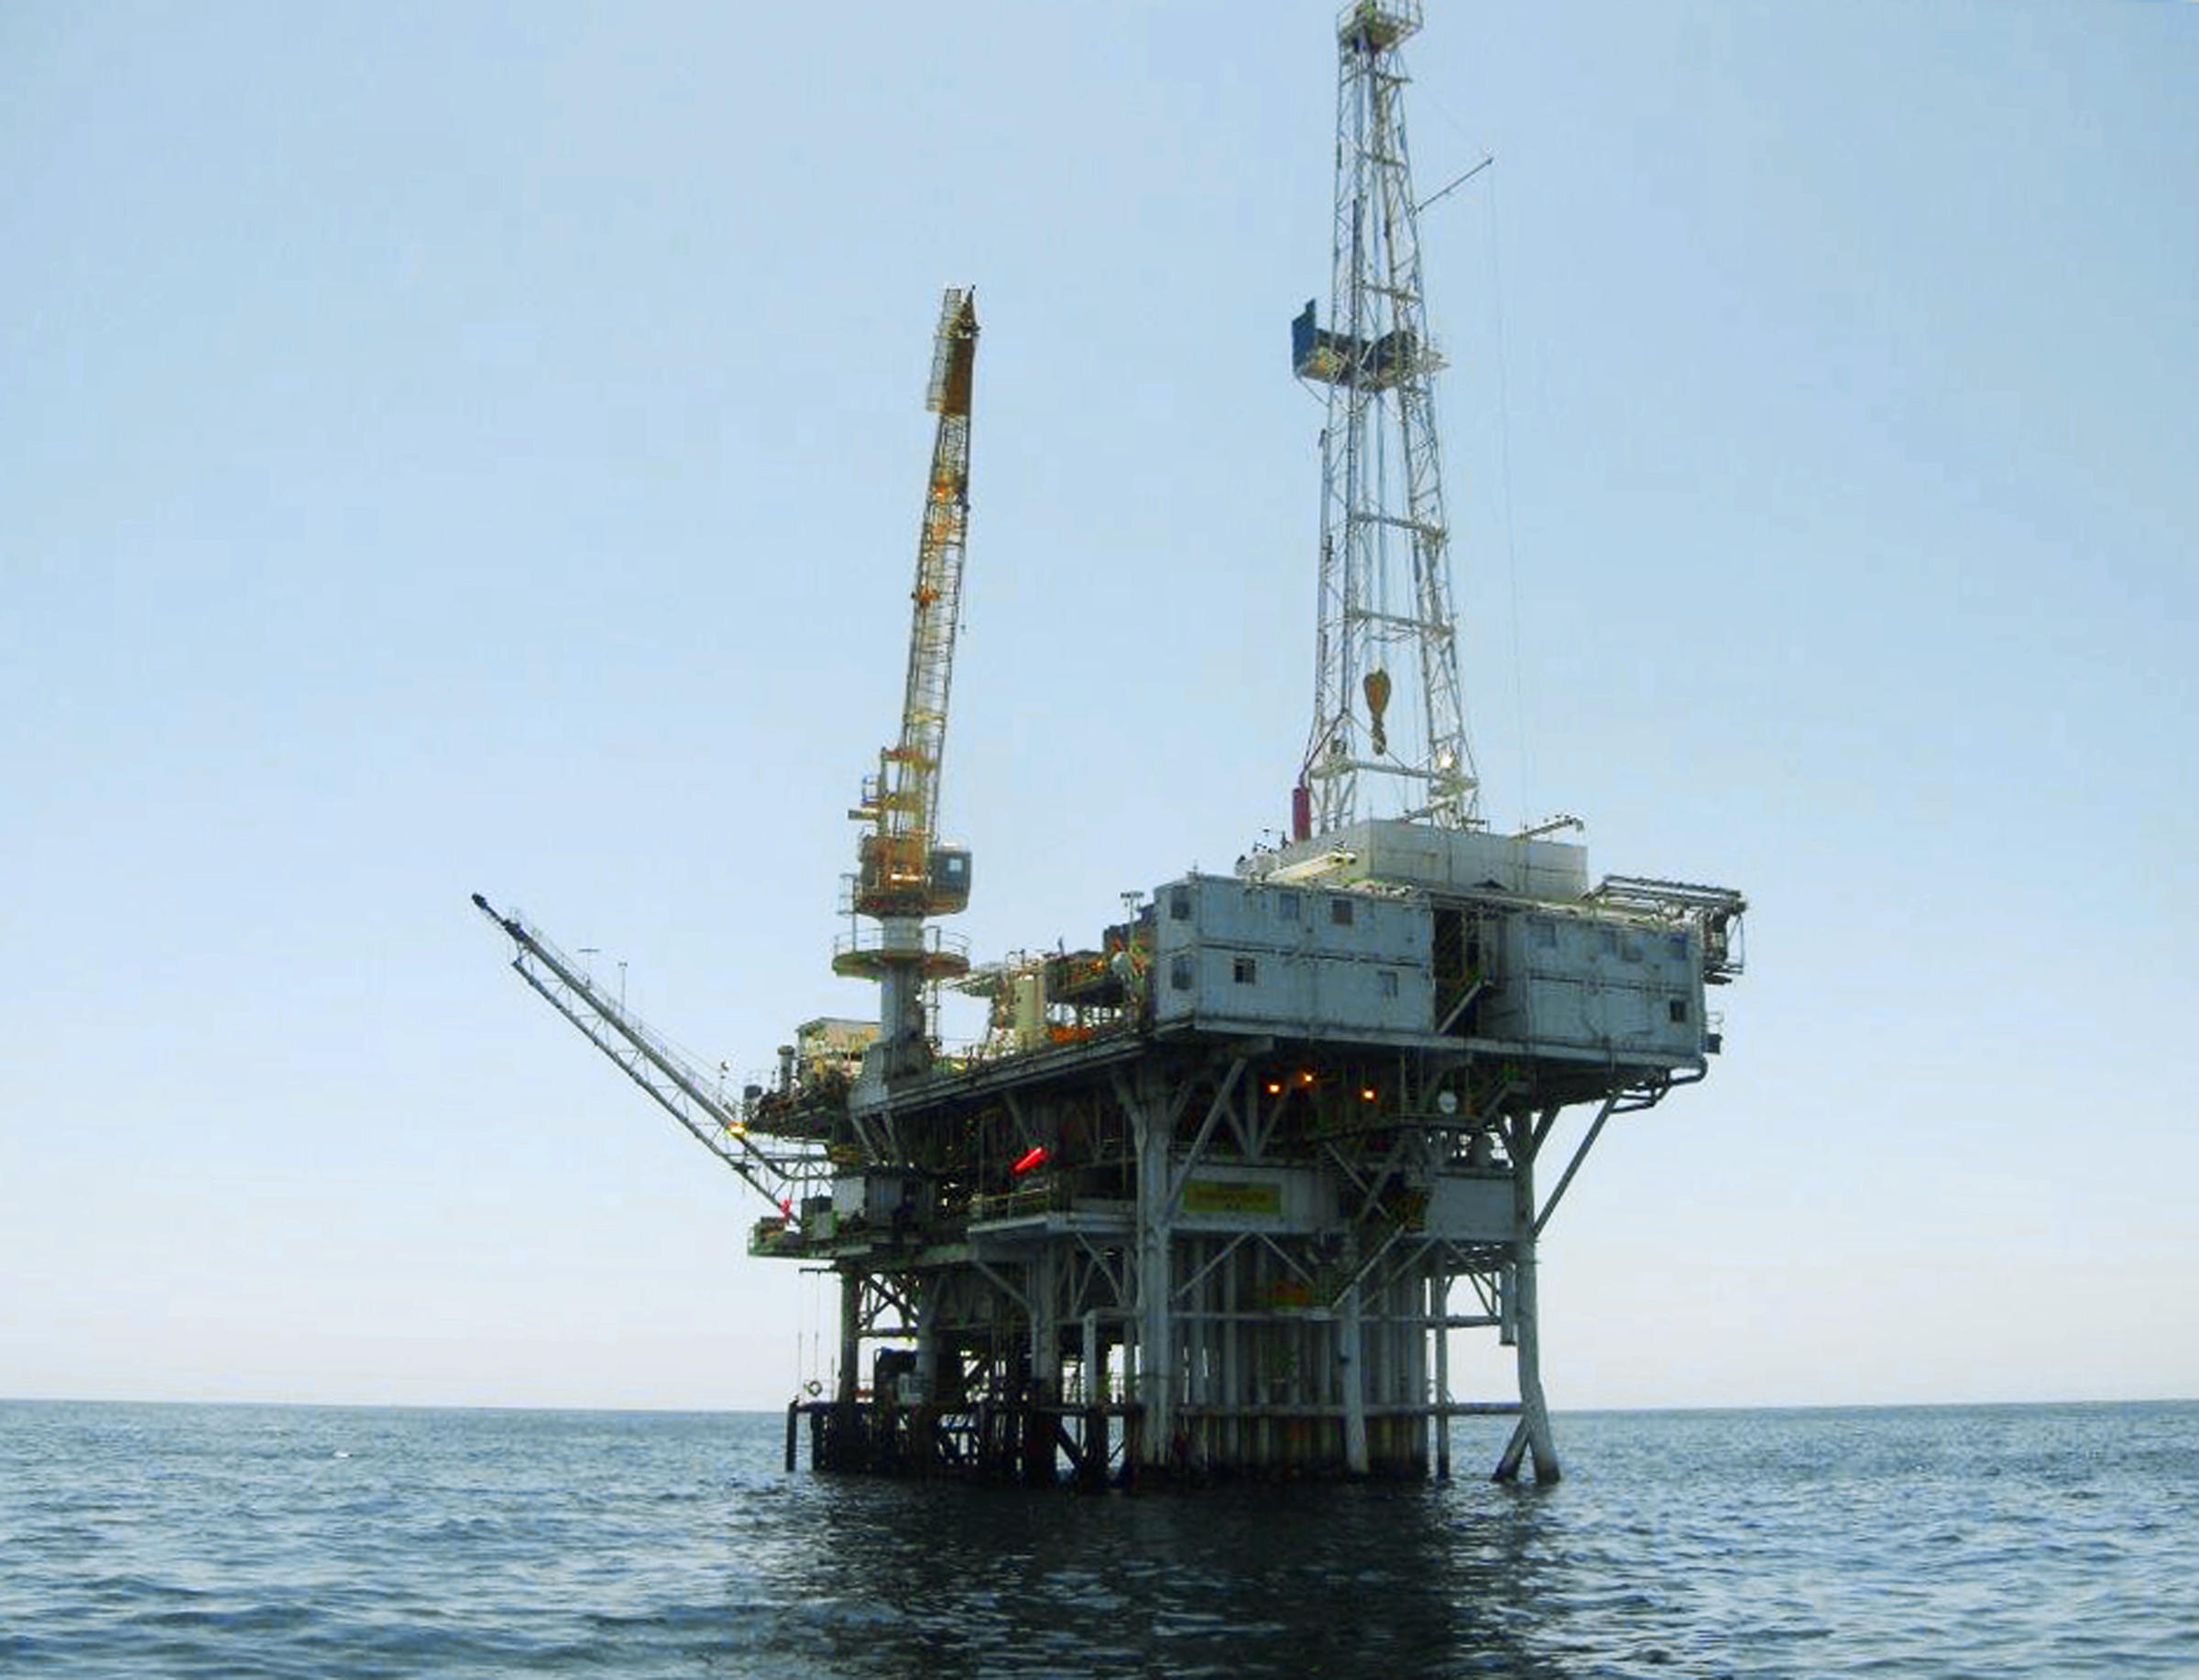 New England senators introduce offshore drilling ban